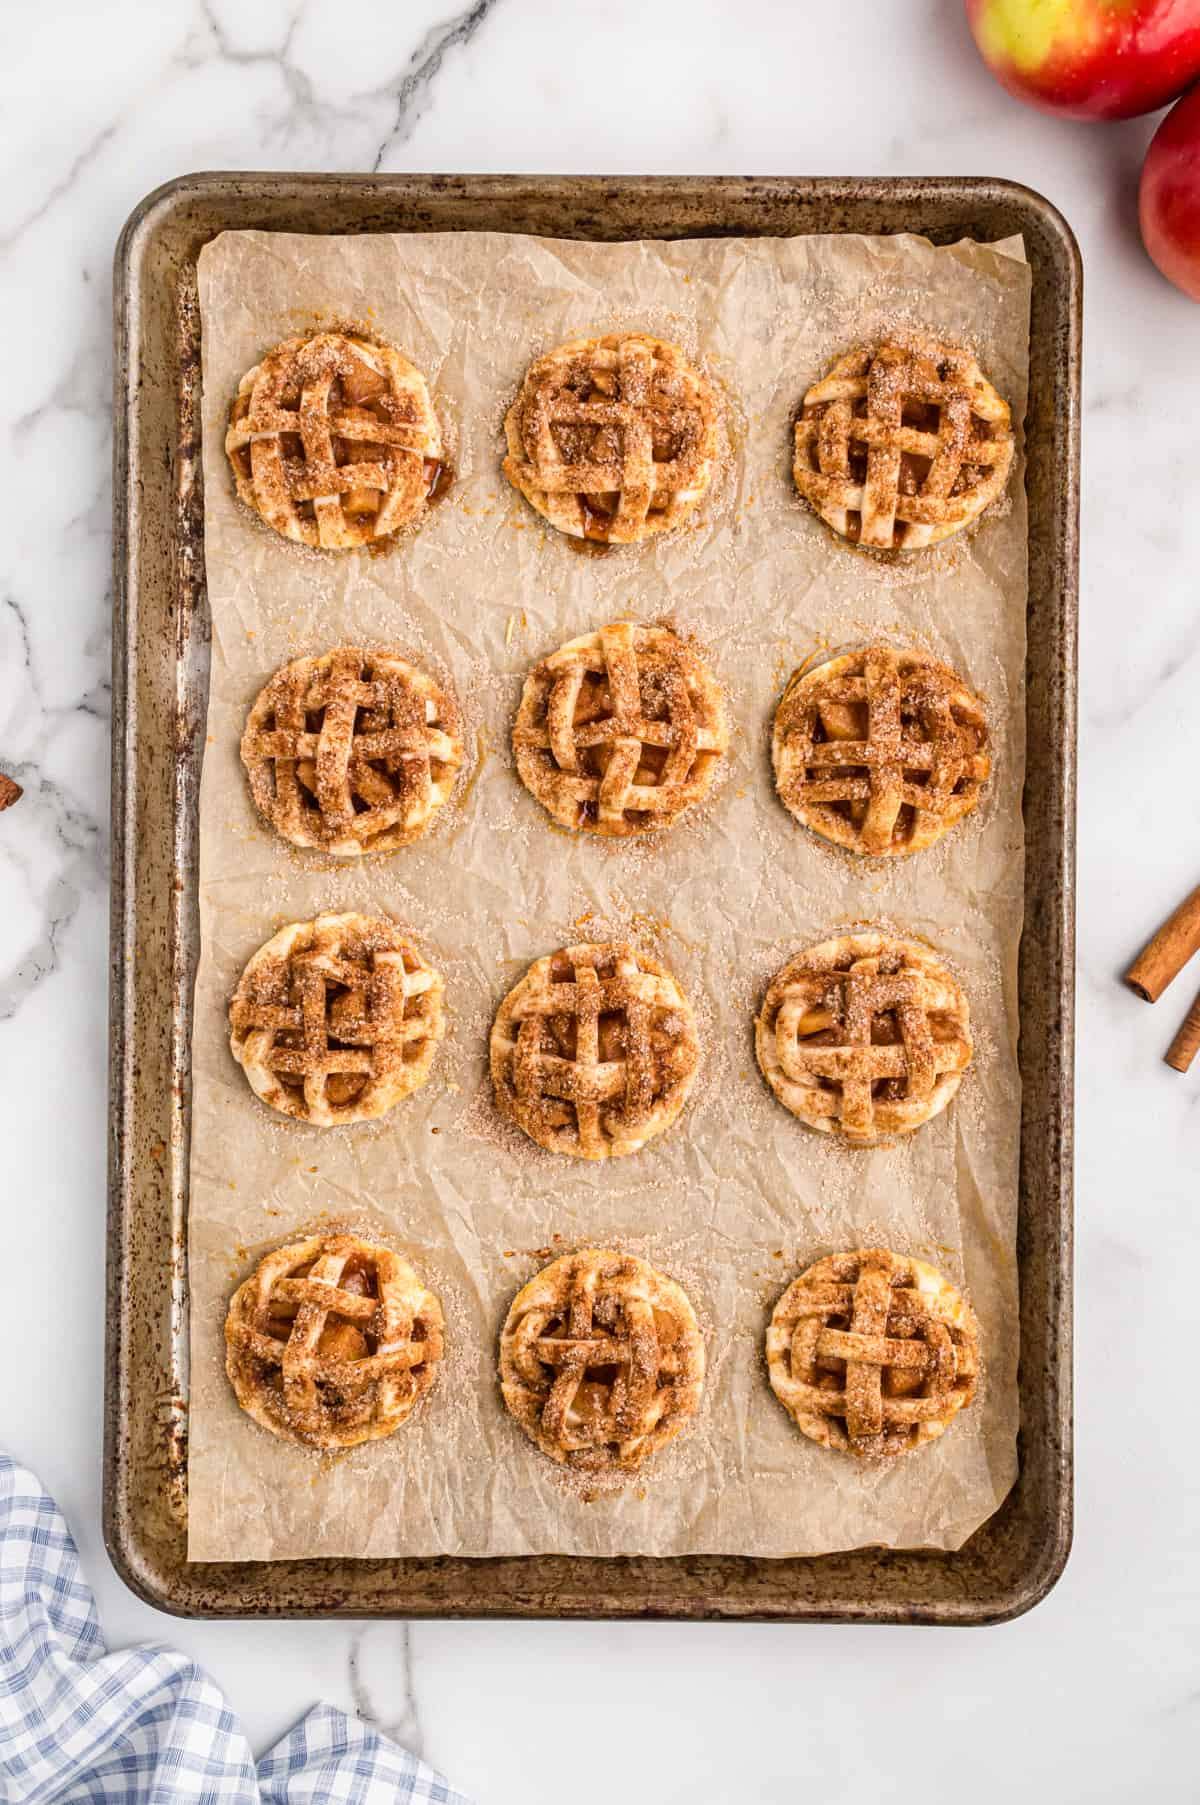 Mini apple pie cookies on baking sheet fresh from the oven